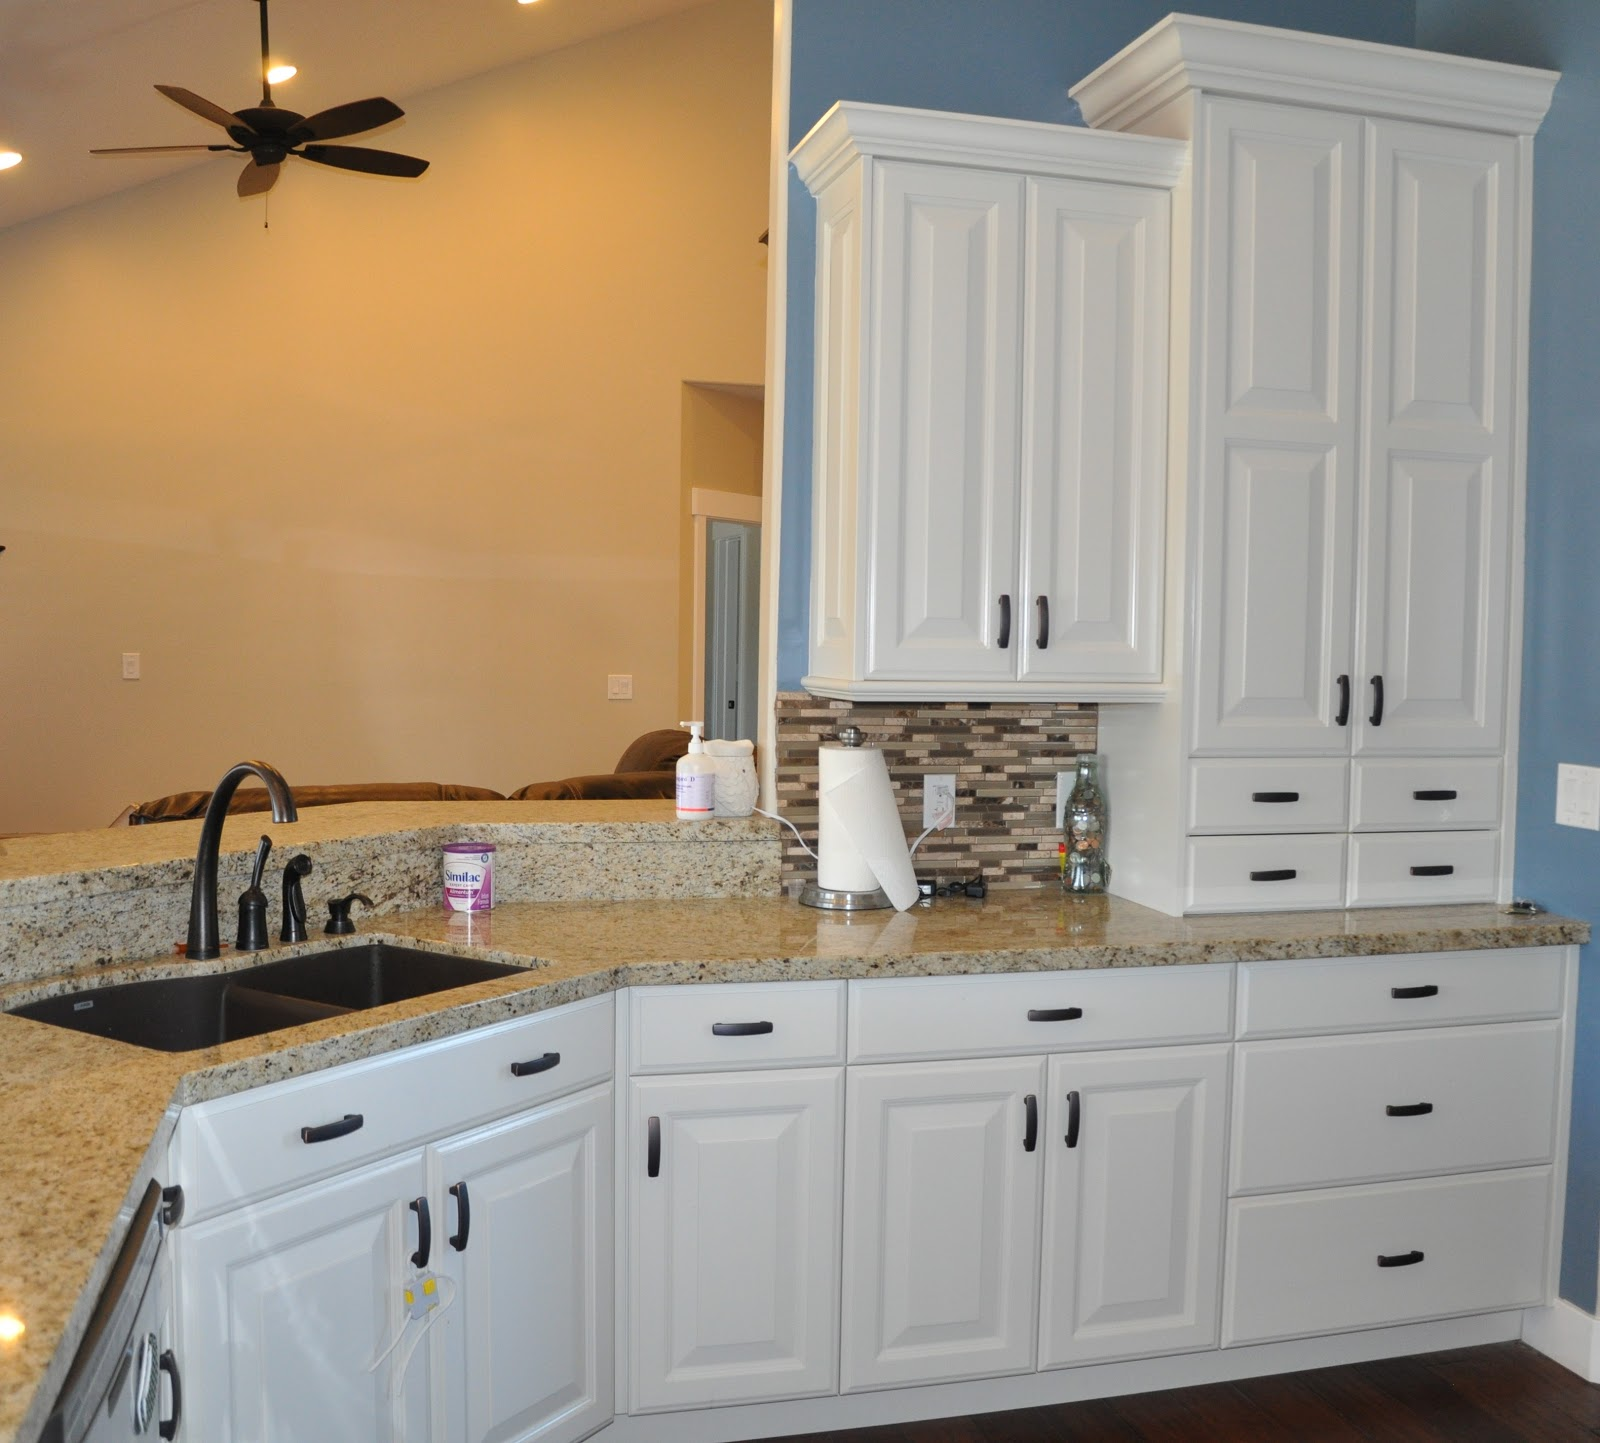 Stone ridge cabinets april 2012 - We Recently Completed Doing The Cabinets For A New Home And Love How They Turned Out Especially The Kitchen